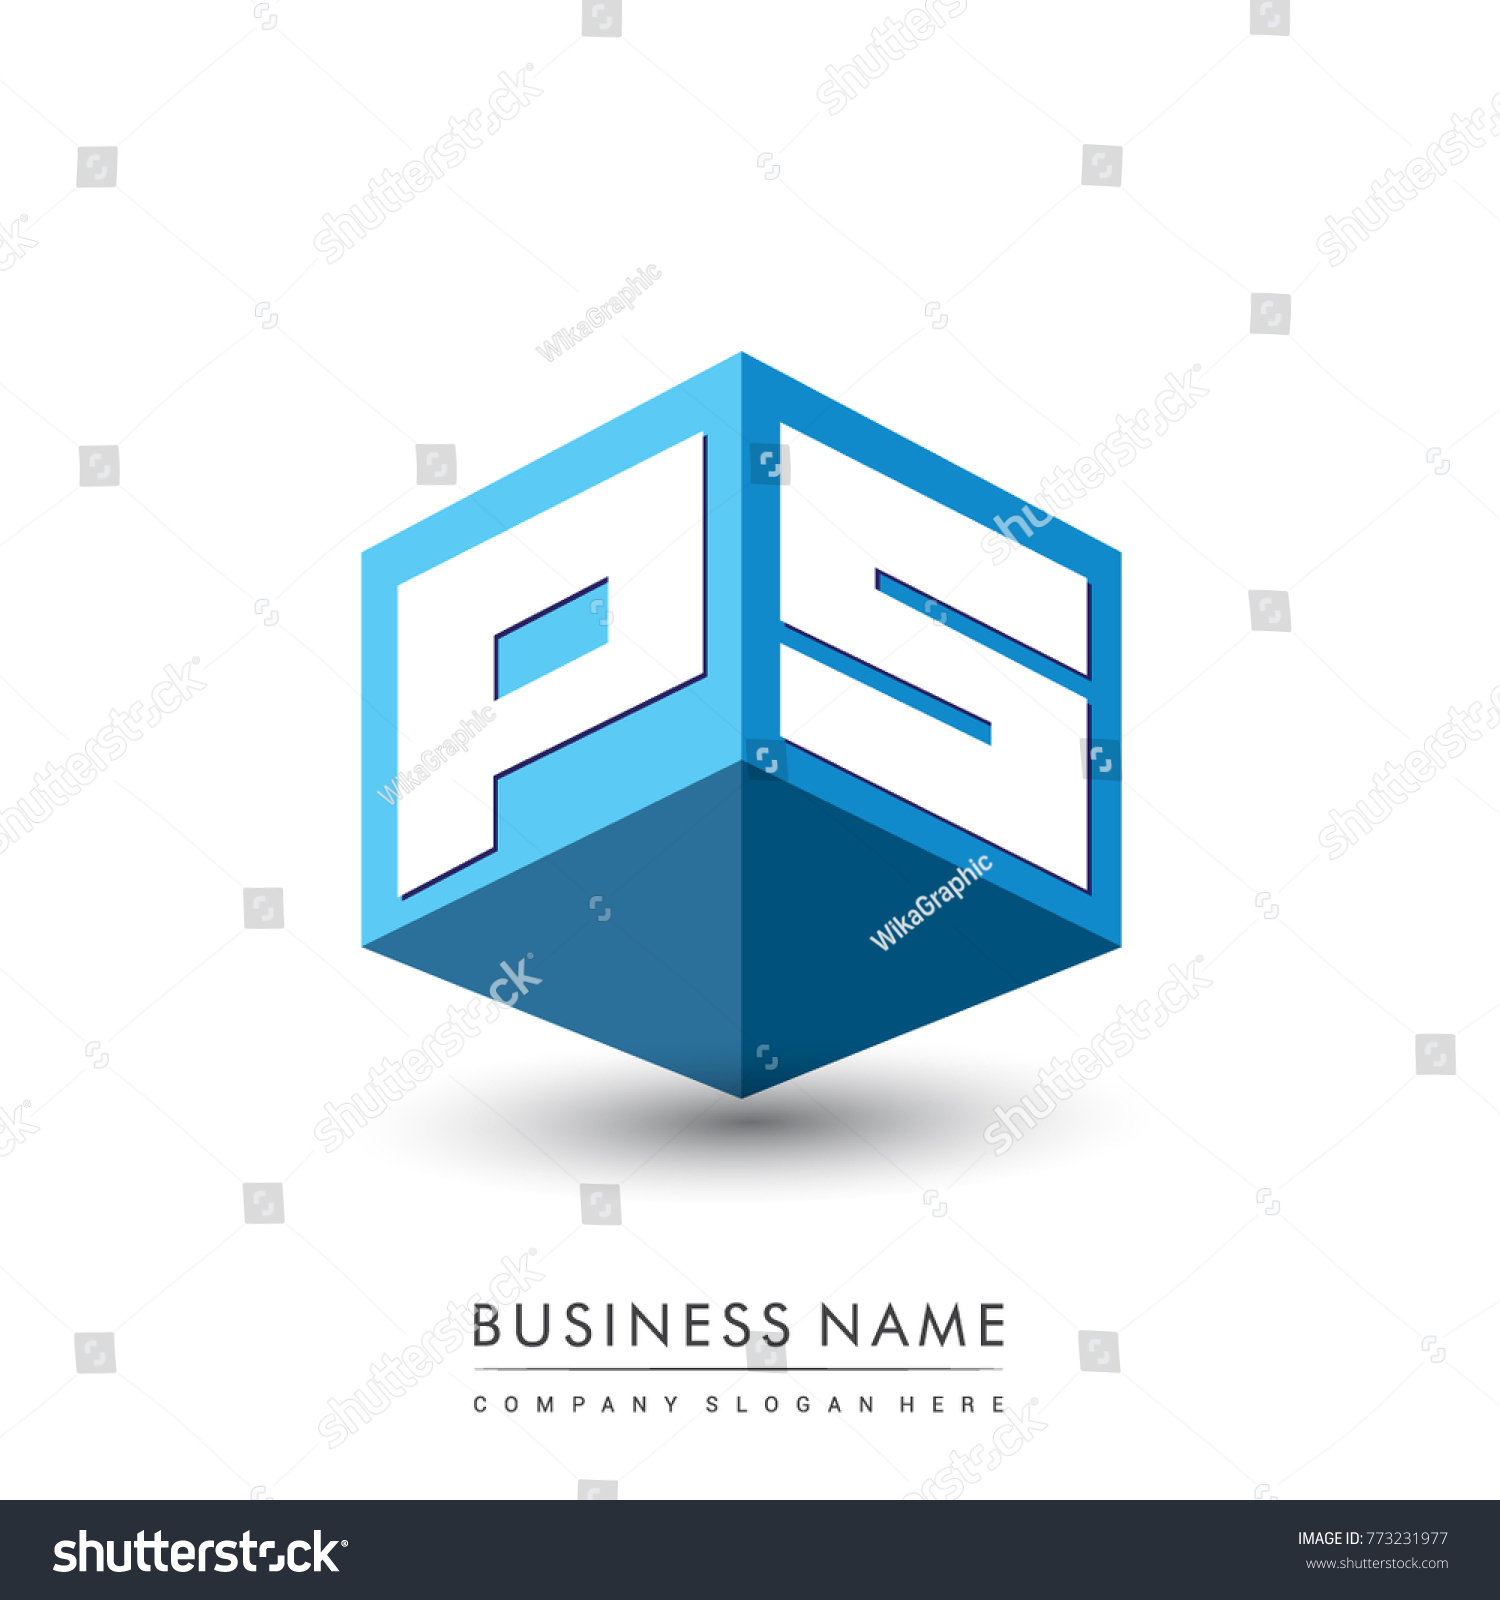 Letter Ps Logo Hexagon Shape Blue Stock Vector   Shutterstock